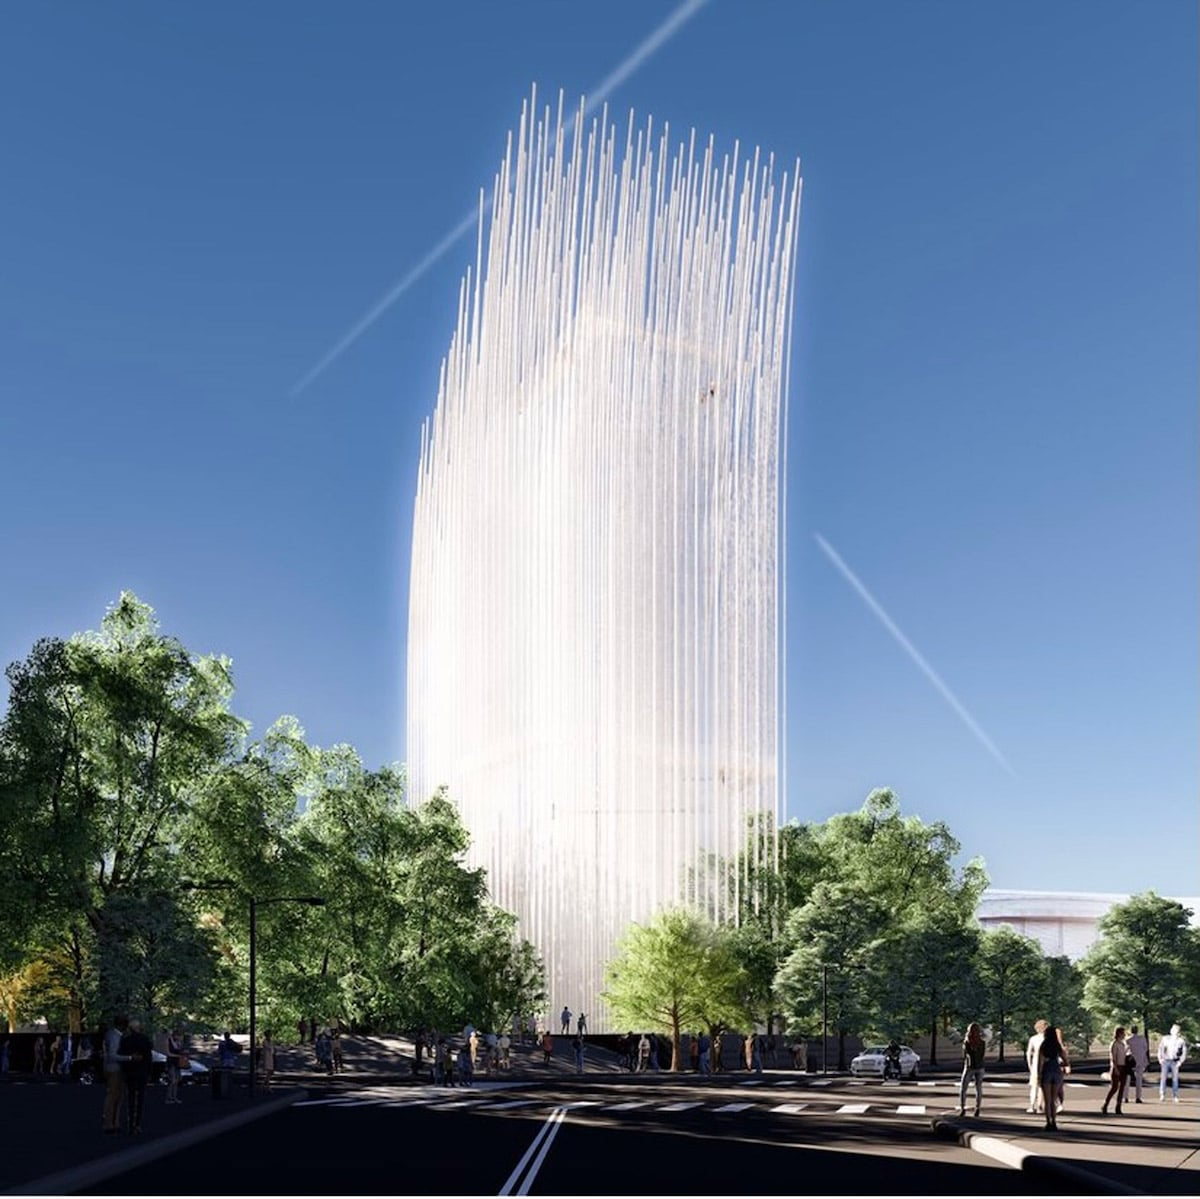 Silicon Valley's Breeze of Innovation Tower Will Be Powered by the Wind